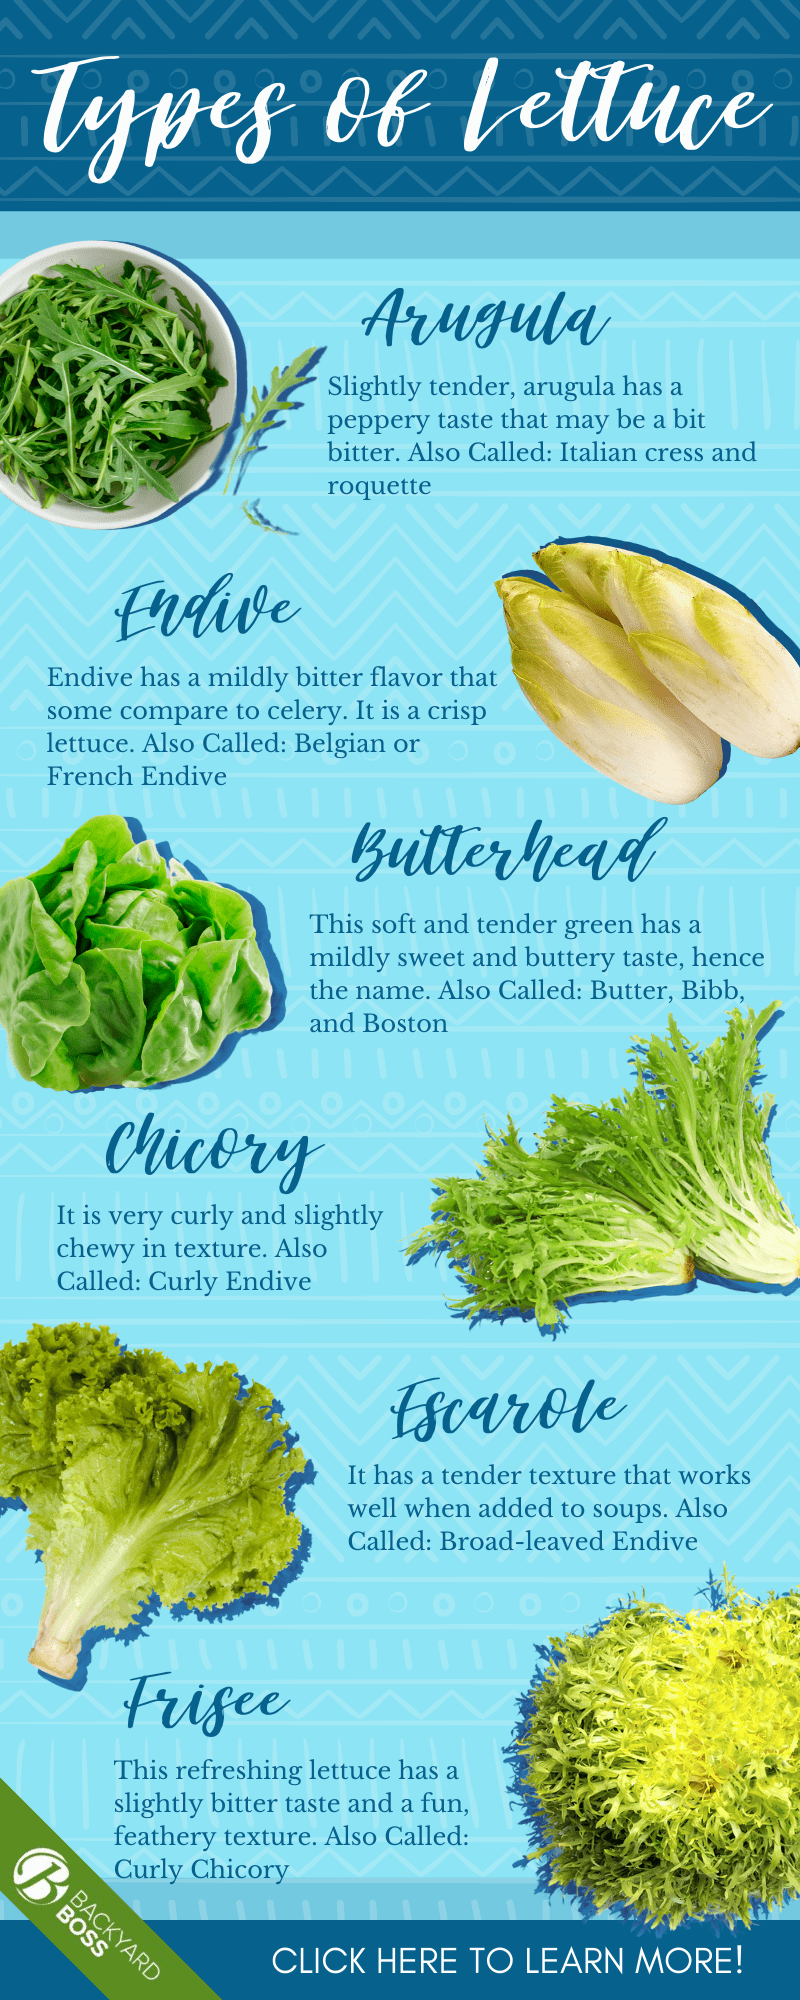 Everything You Need to Know About Lettuce - Infographic